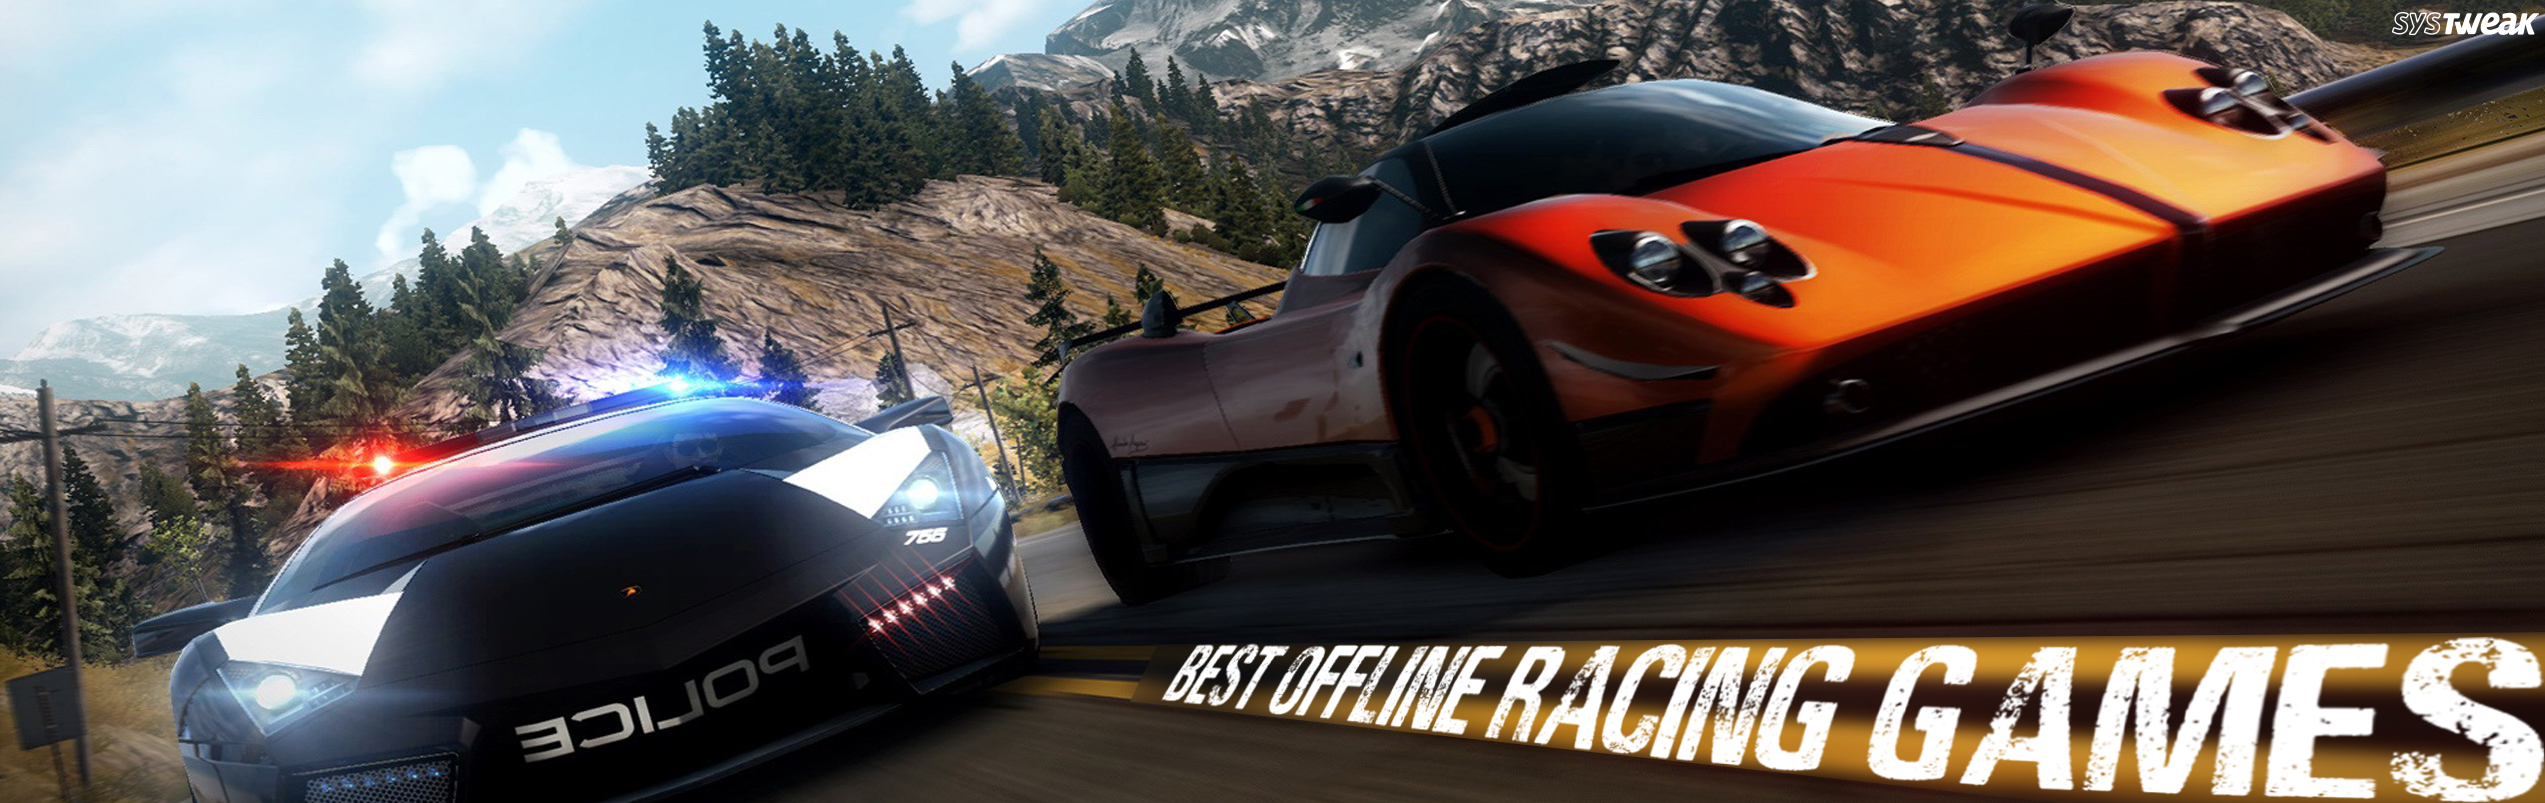 10 Best Offline Racing Games For Android 2018